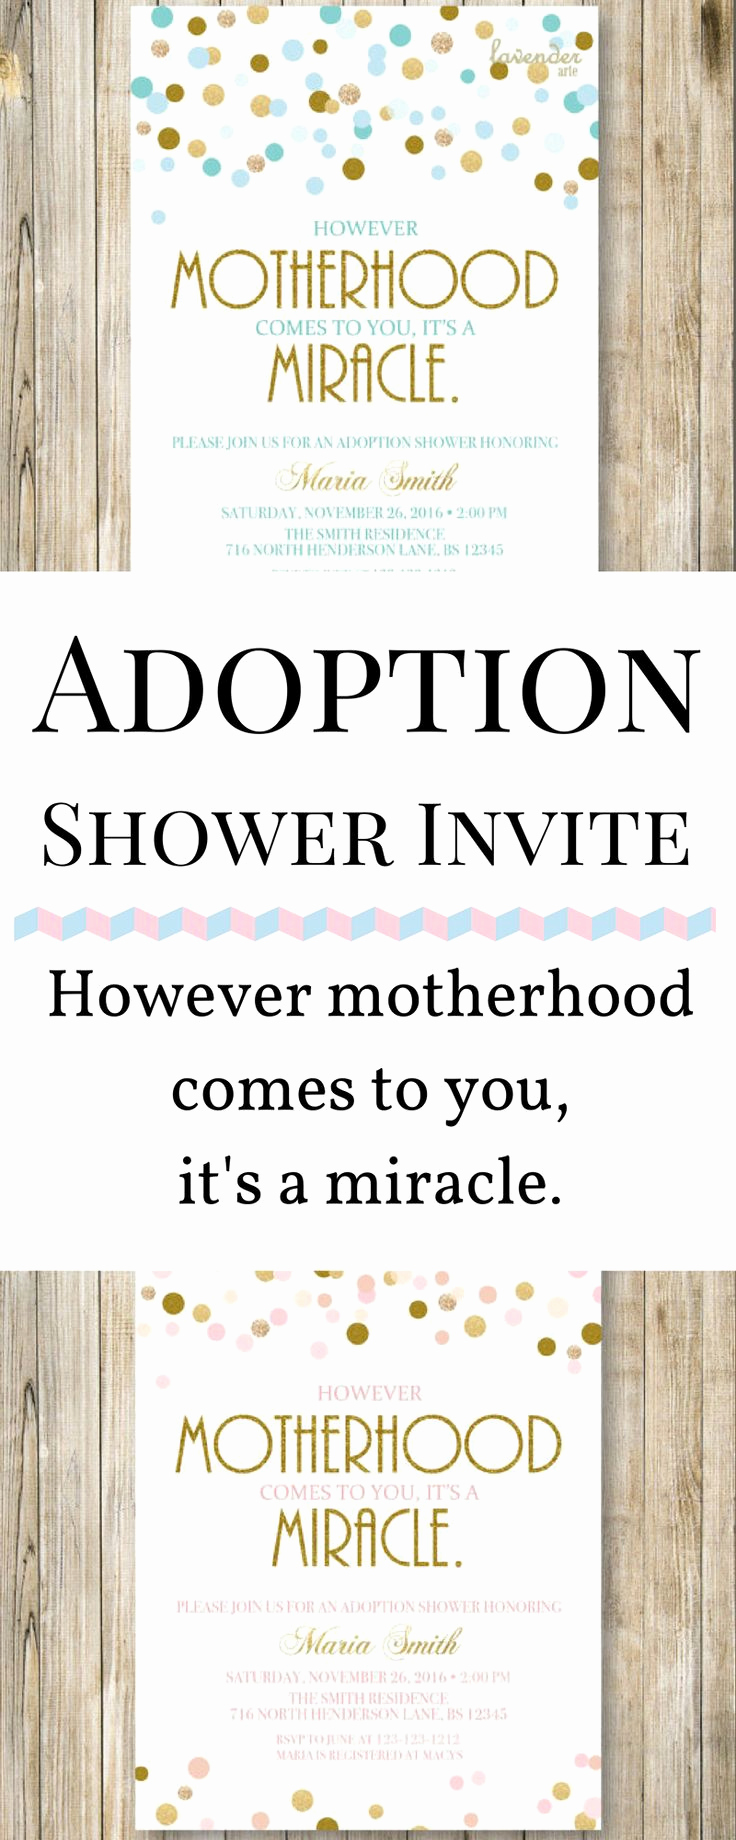 Adoption Shower Invitation Wording Inspirational Best 25 Adoption Shower Ideas On Pinterest